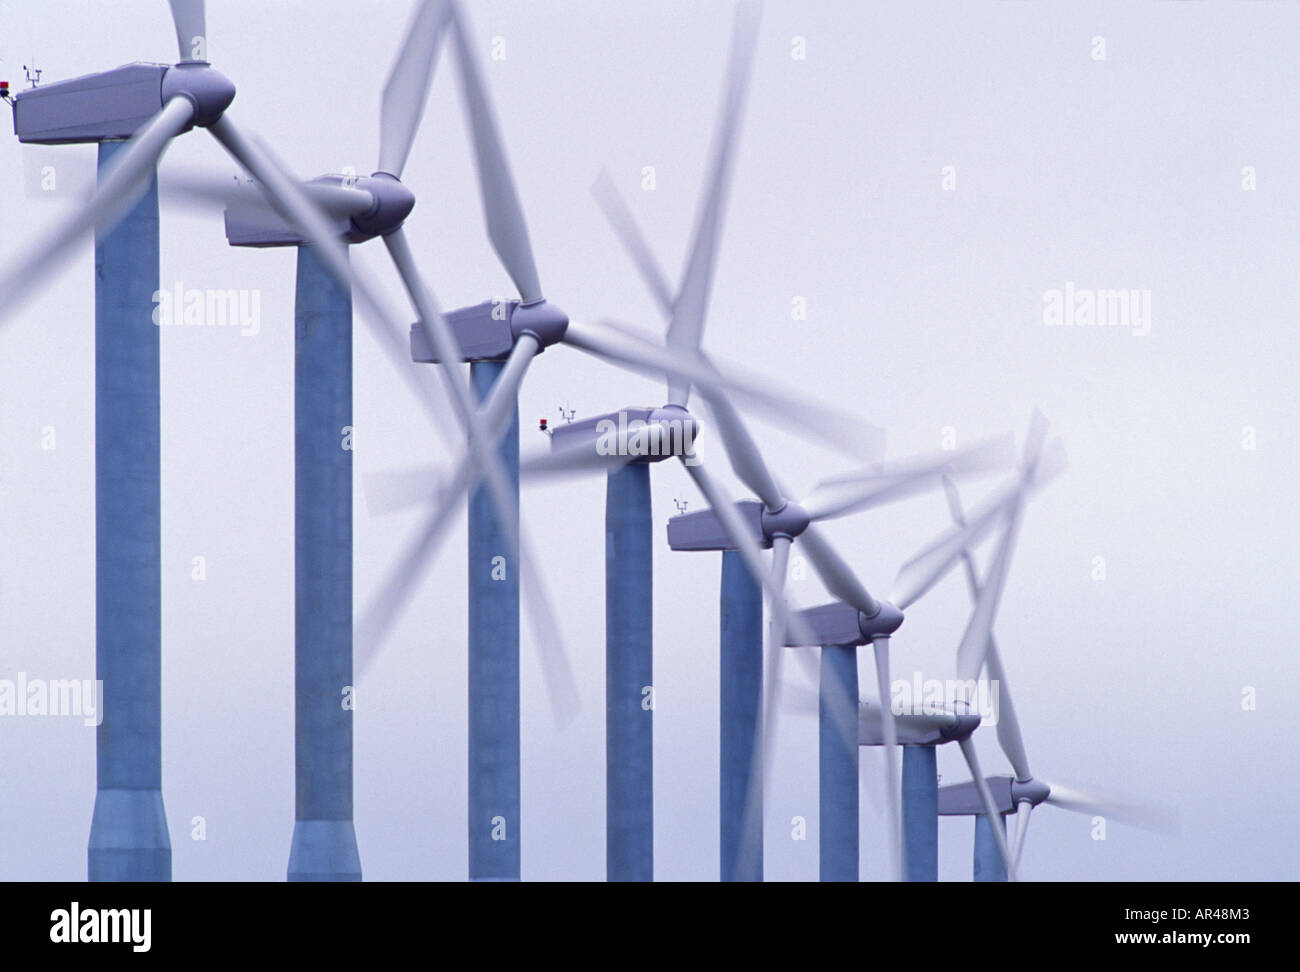 The propeller blades of wind turbines spin in the wind against a gray sky - Stock Image